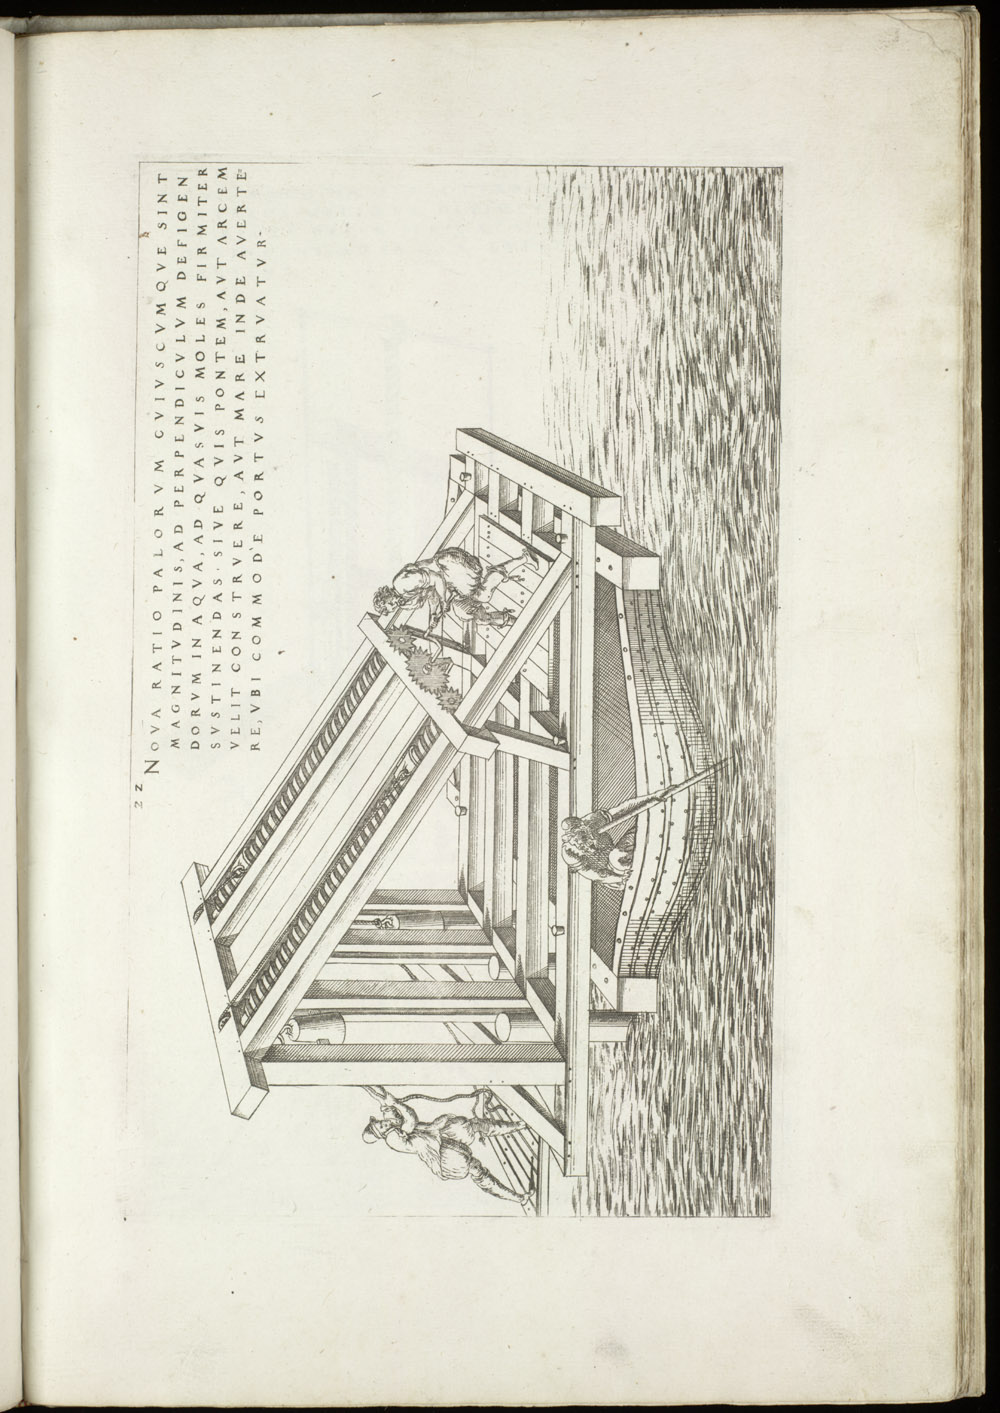 Plate 22 [Vertical pile driver],  Image number:SIL4-2-77a